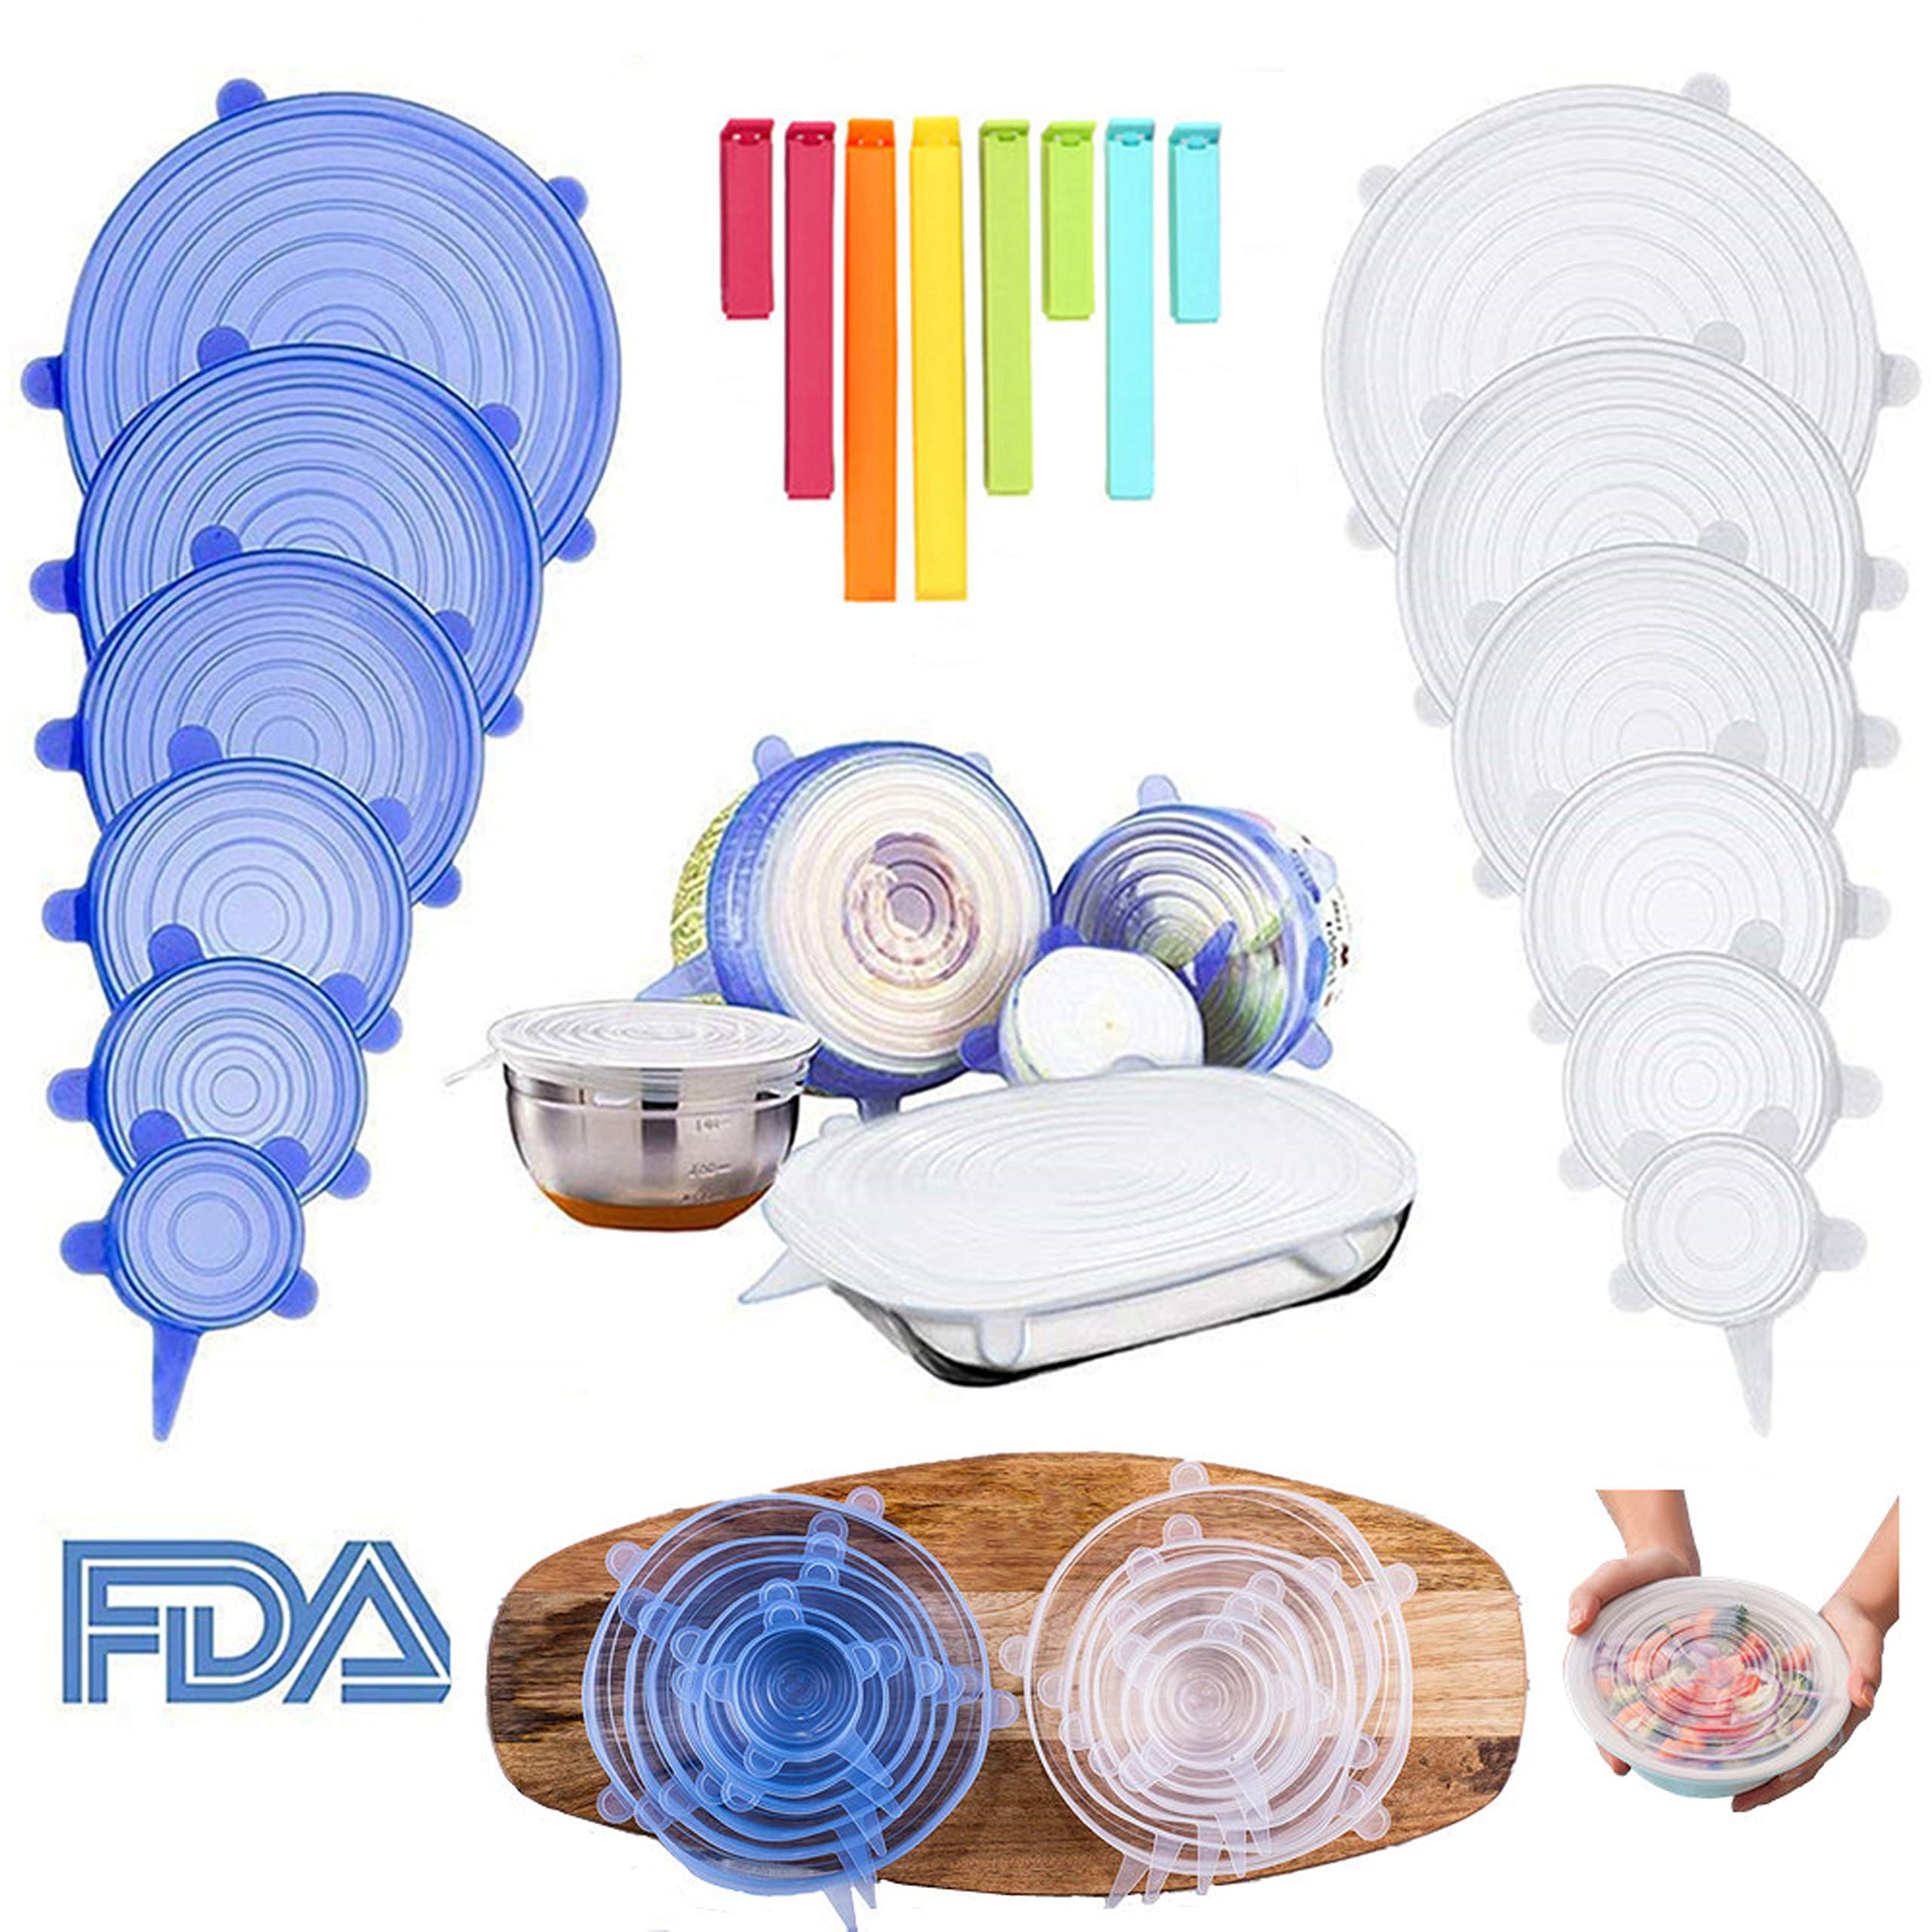 Silicone Stretch Food Covers Lids - Various Sizes Reusable Durable and Expandable Containers Preservative Wrappers for Fruits & Vegetables or Cups, Bowls, Mugs, Dishes and Cans (BLUE+WHITE) by Be-one (Image #2)